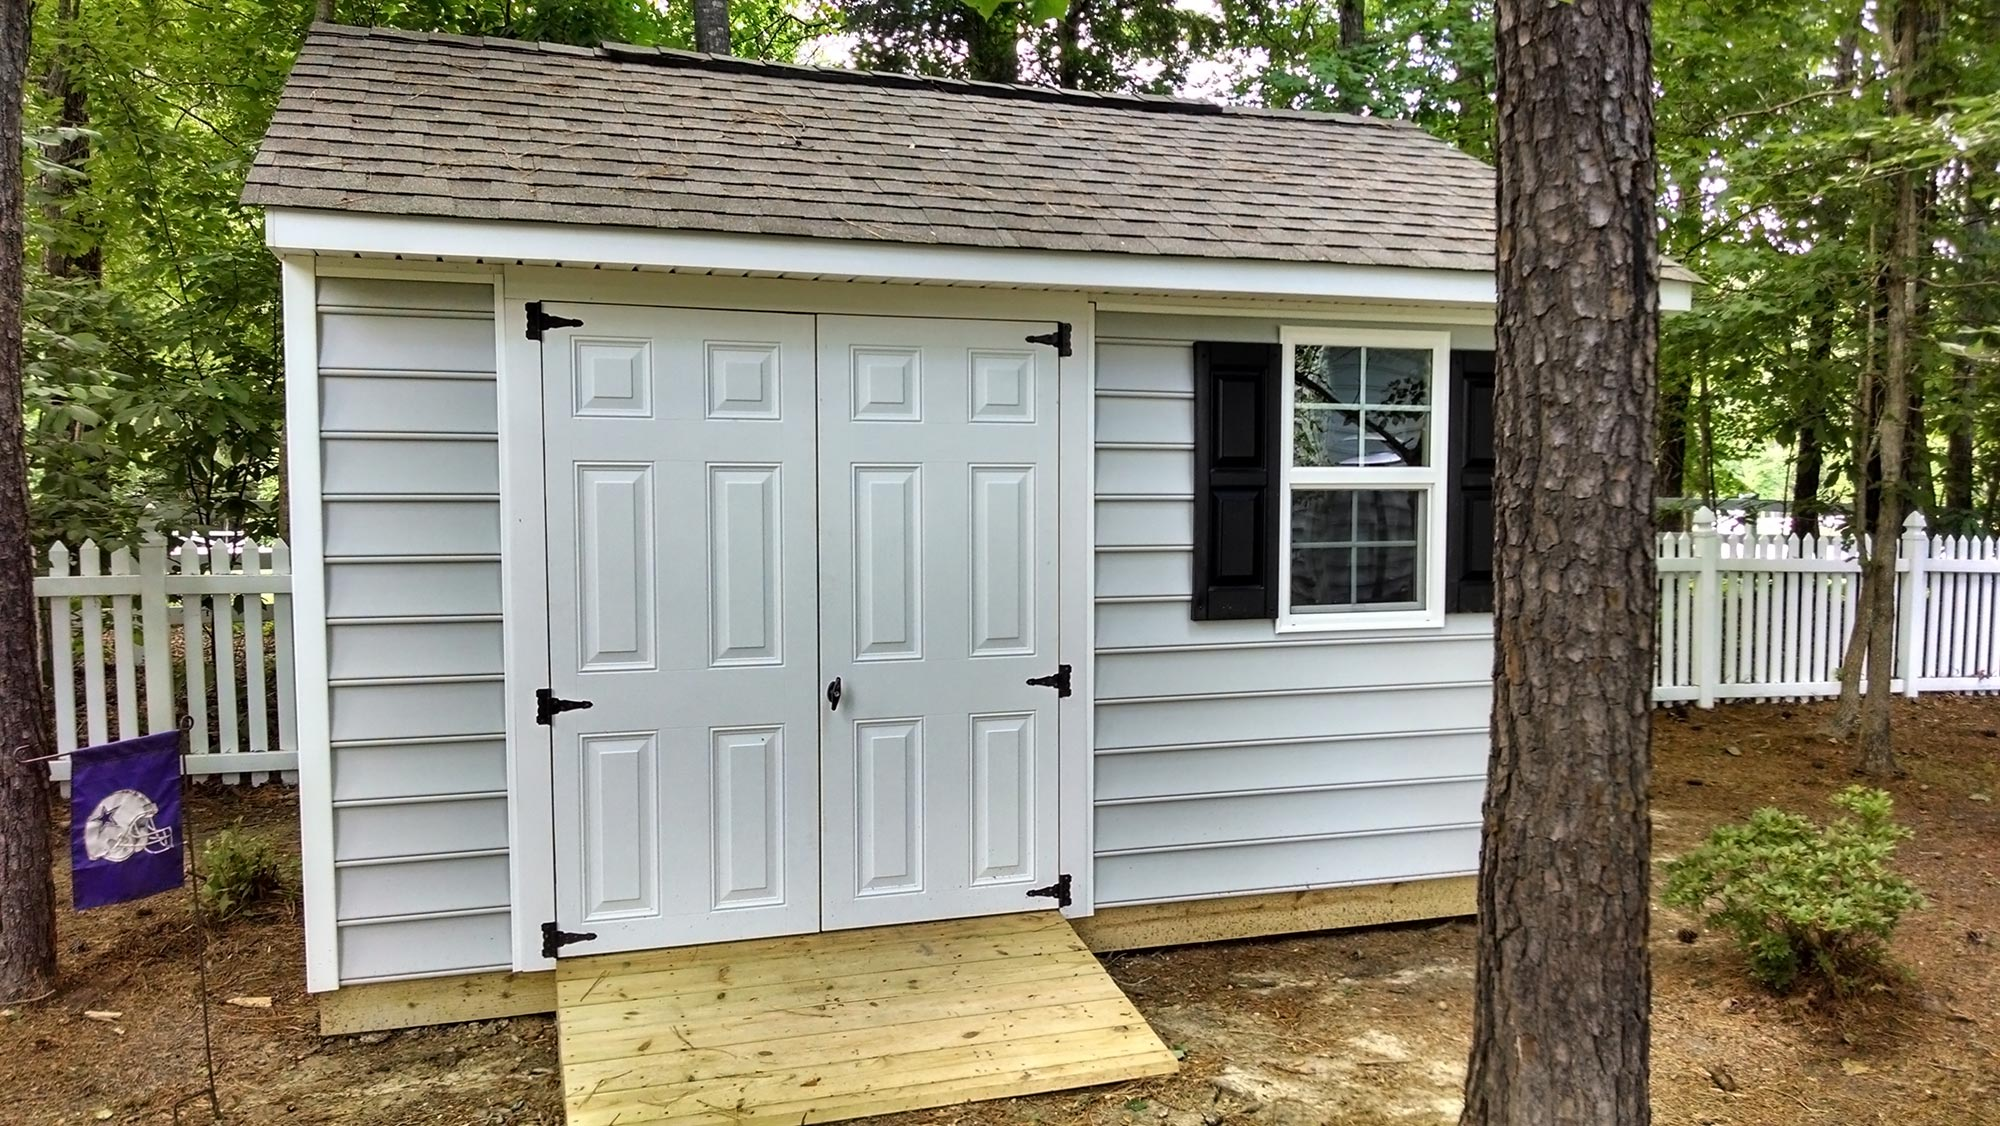 Deck and storage shed midlothian rva remodeling llc for Garden shed on decking